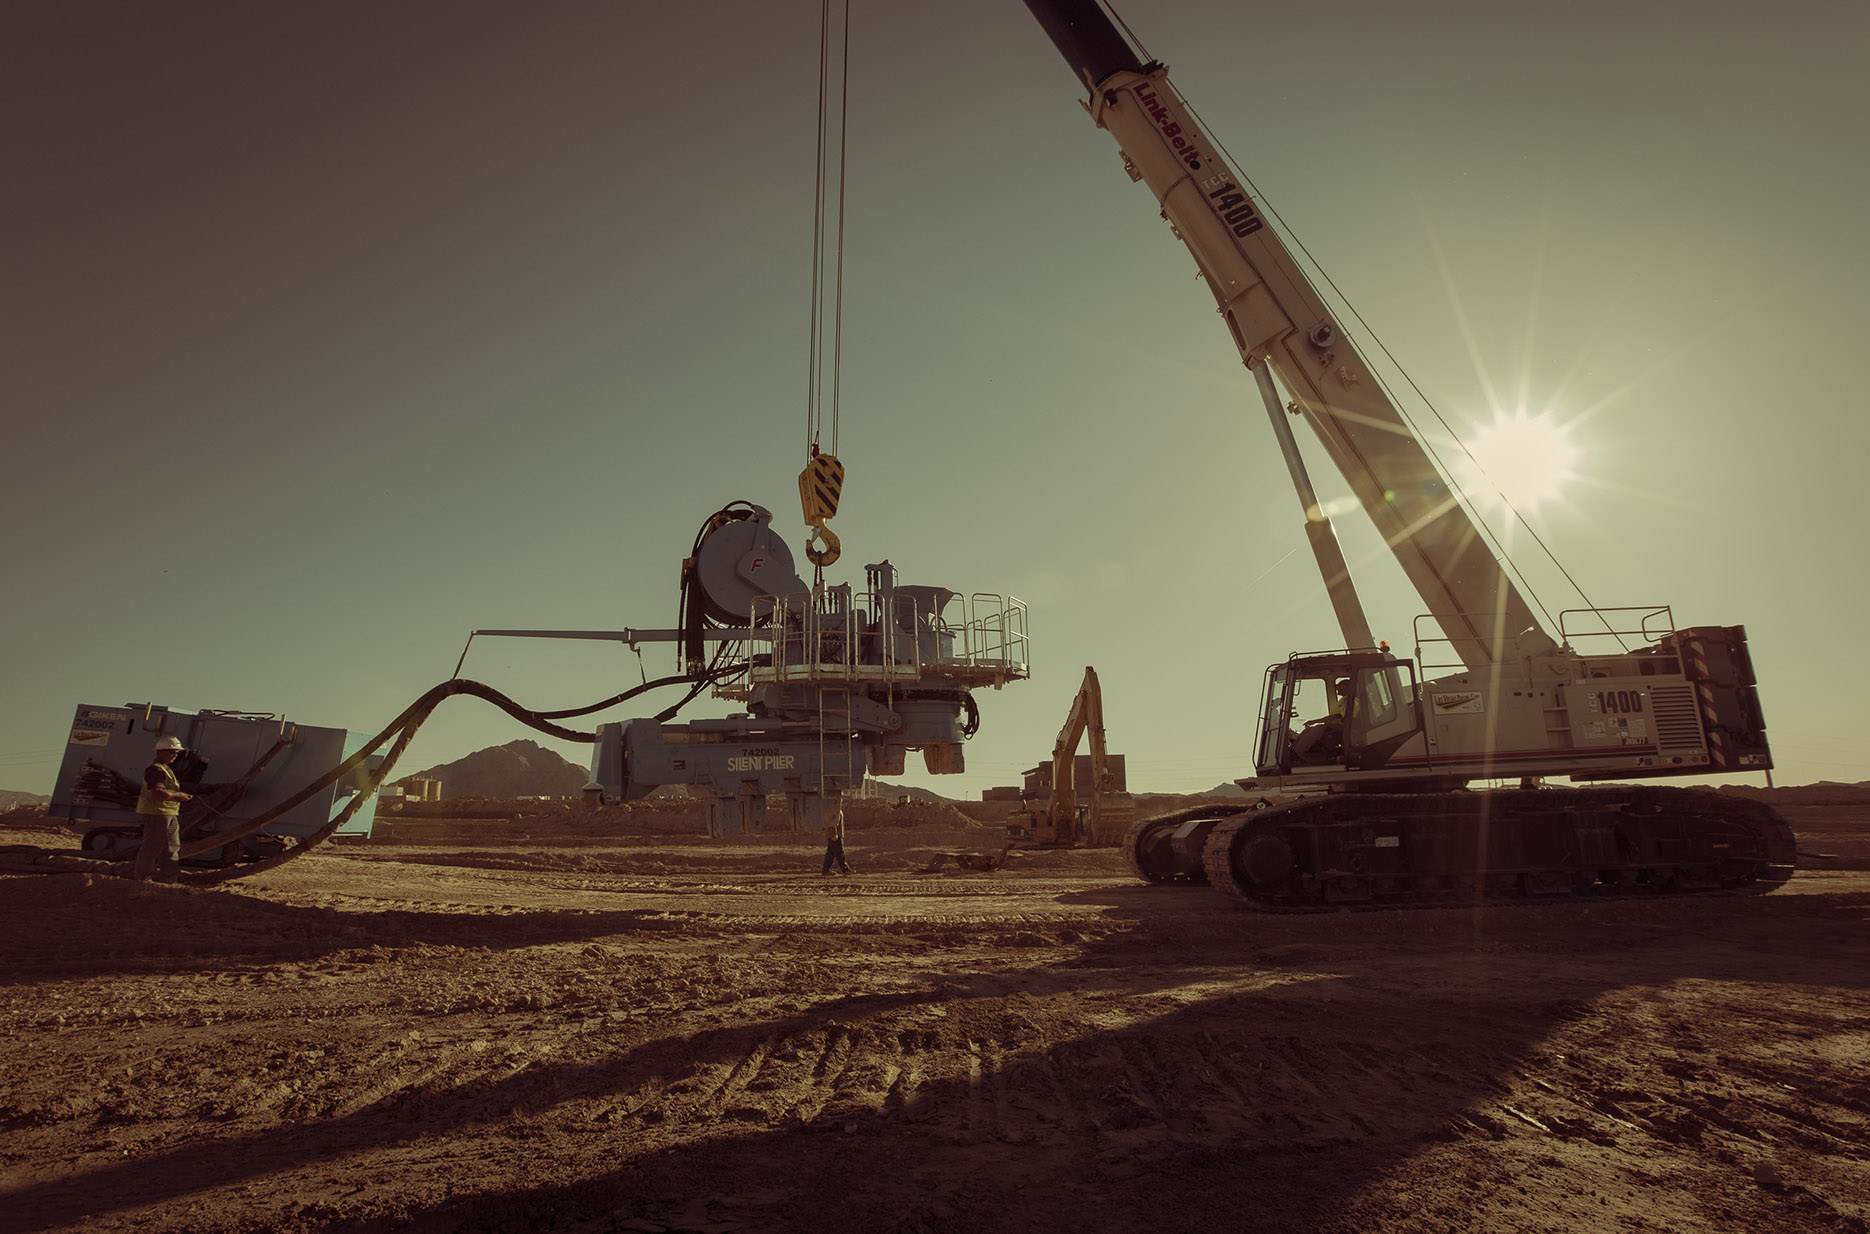 jeff-green-crane-machinery-lasvegas